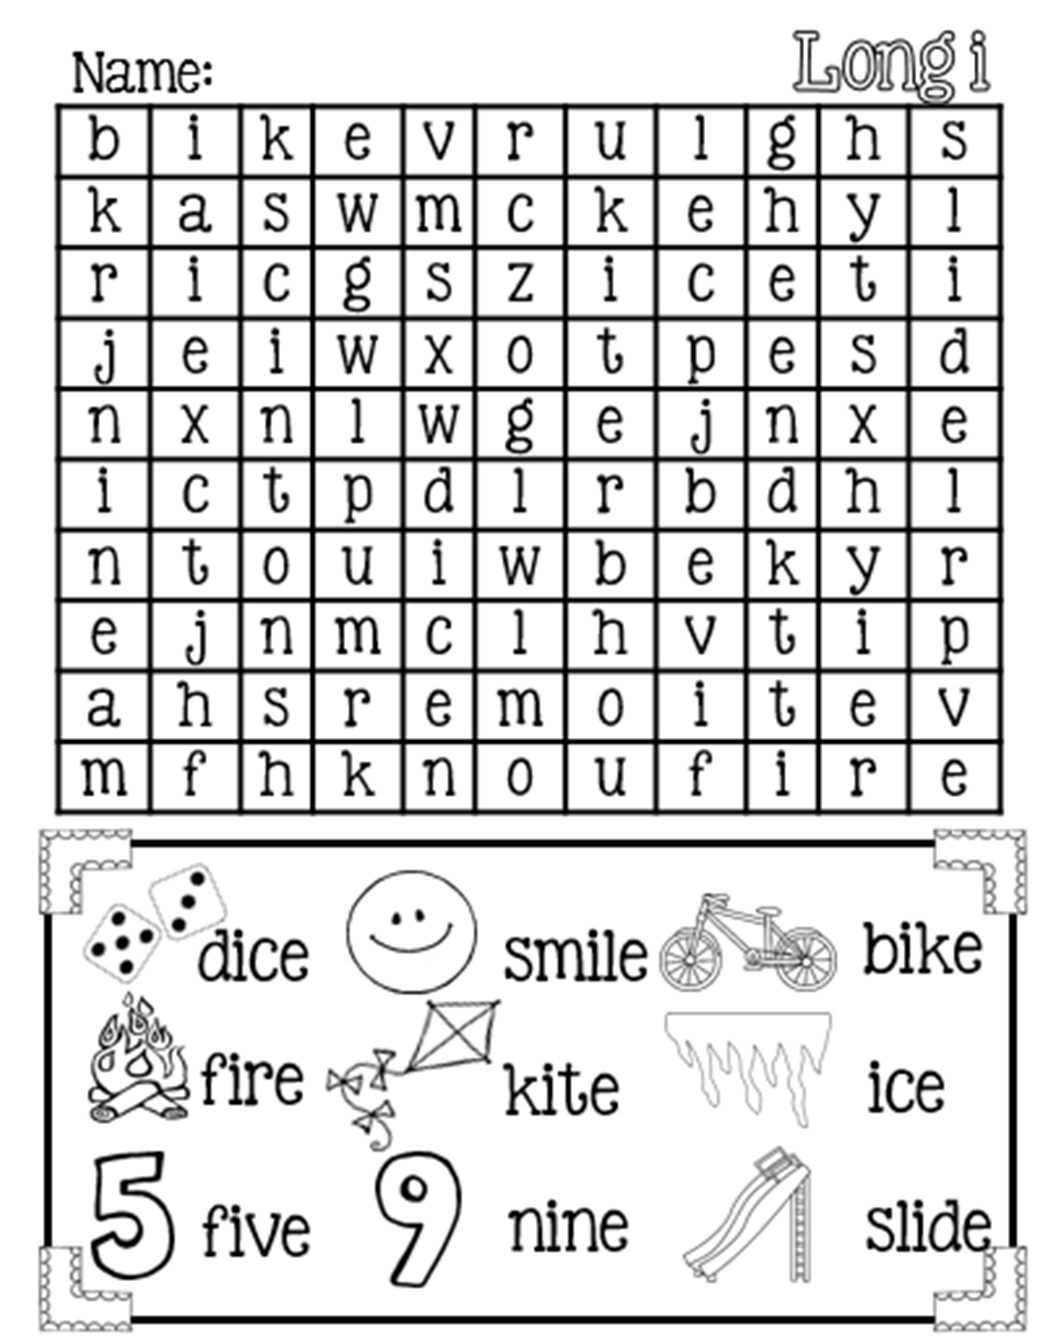 magic e long i word search free phonics and literacy centers pinterest word search. Black Bedroom Furniture Sets. Home Design Ideas